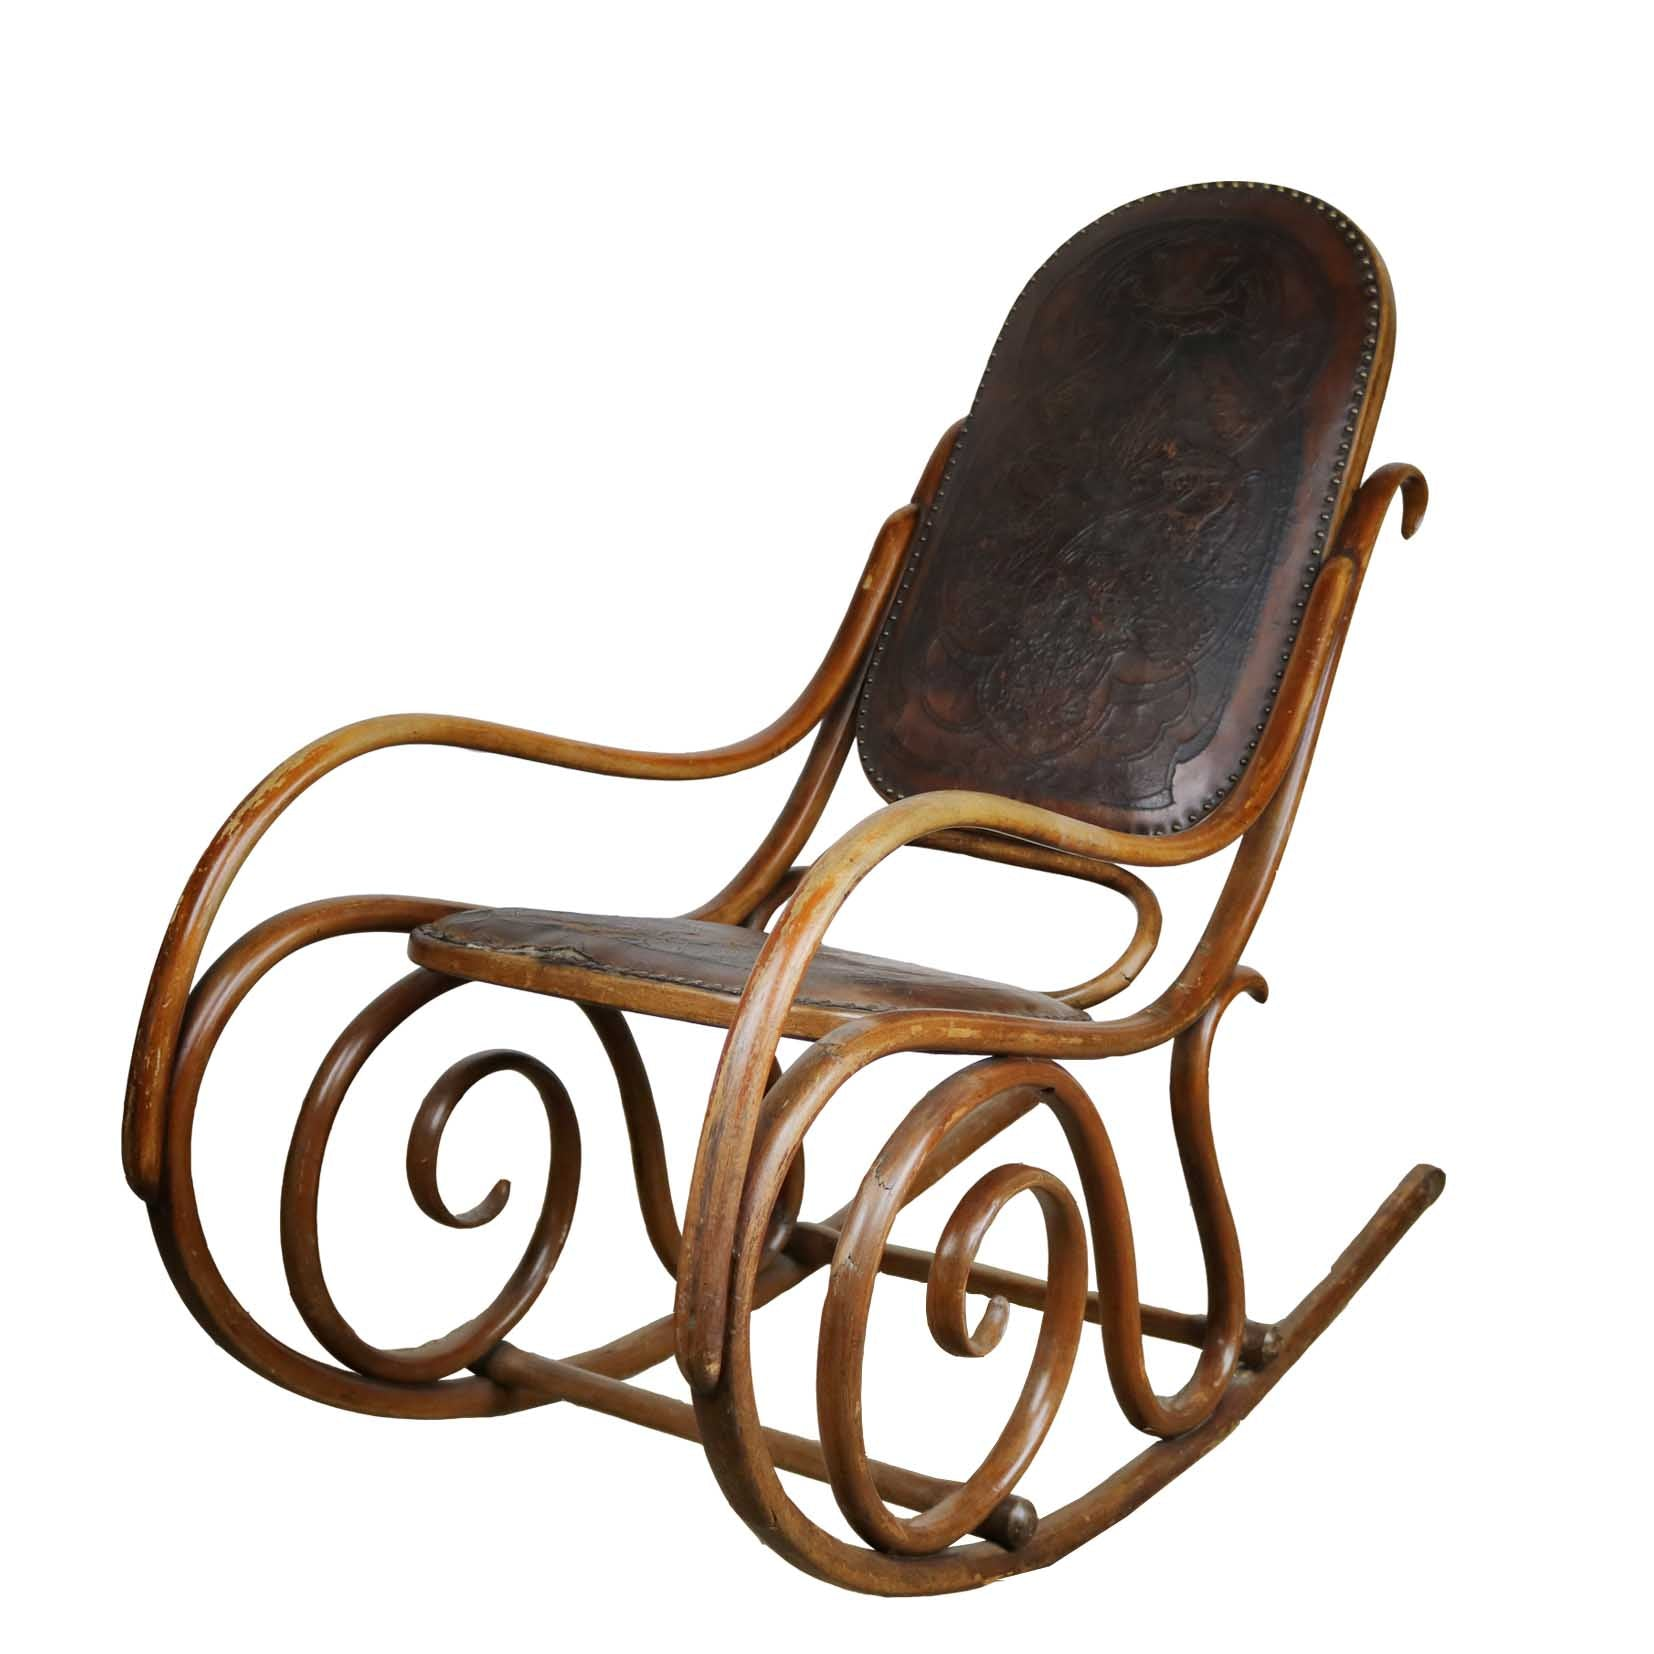 French Thonet Bentwood Rocking Chair - The Architectural Forum